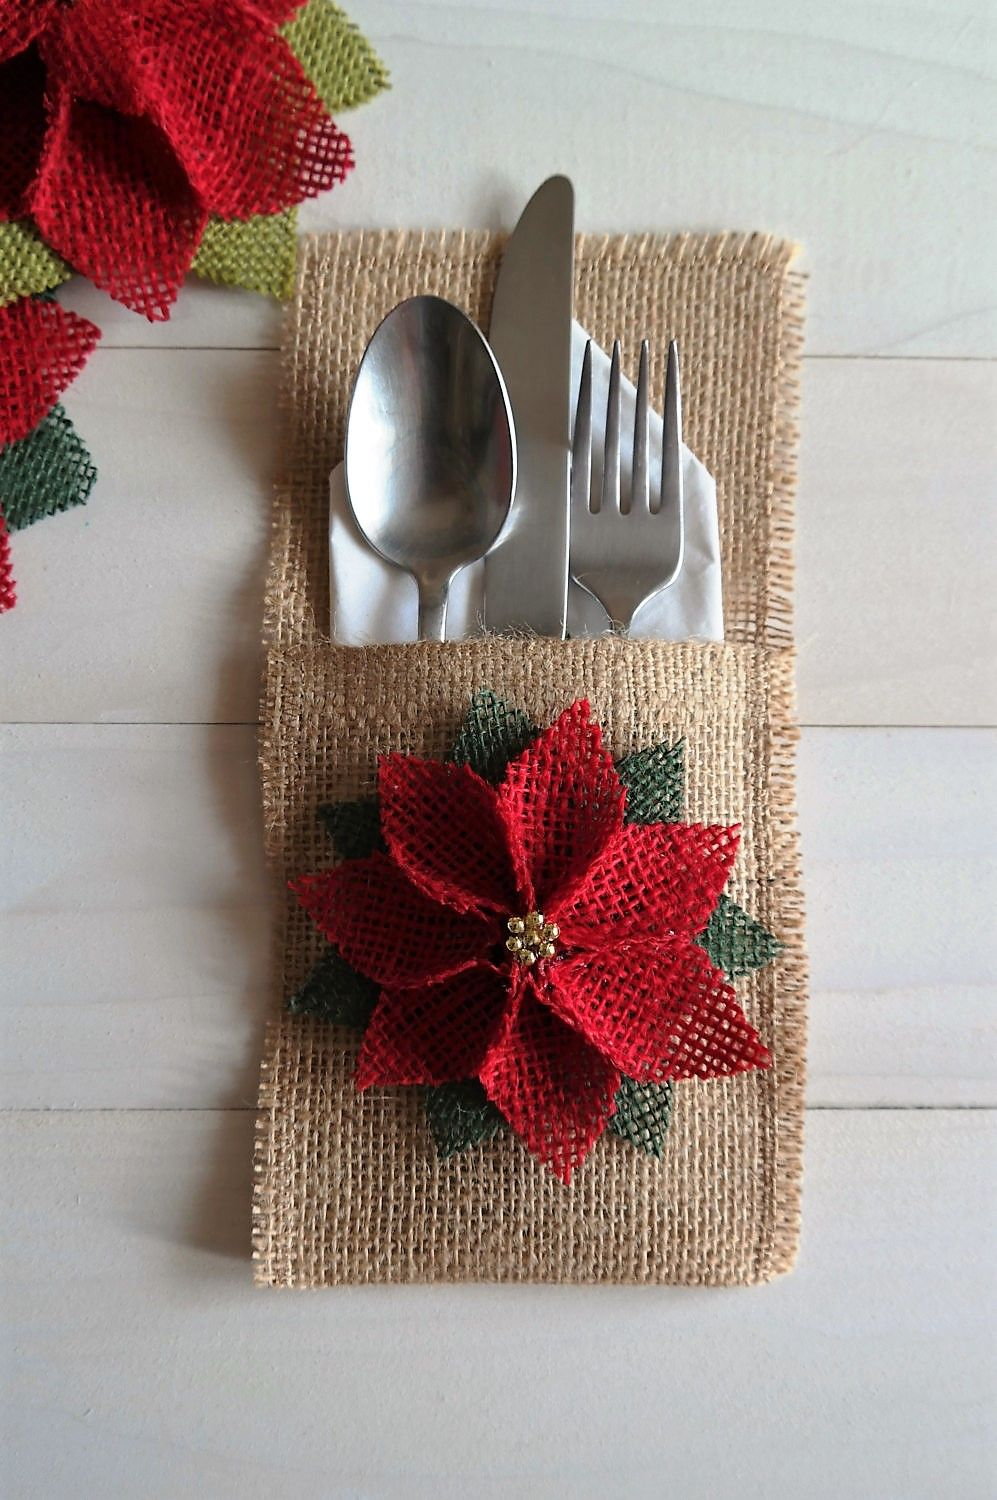 When You Re Remodeling Your Basement Take Care How You Decorate Christmas Silverware Holder Handmade Christmas Christmas Crafts